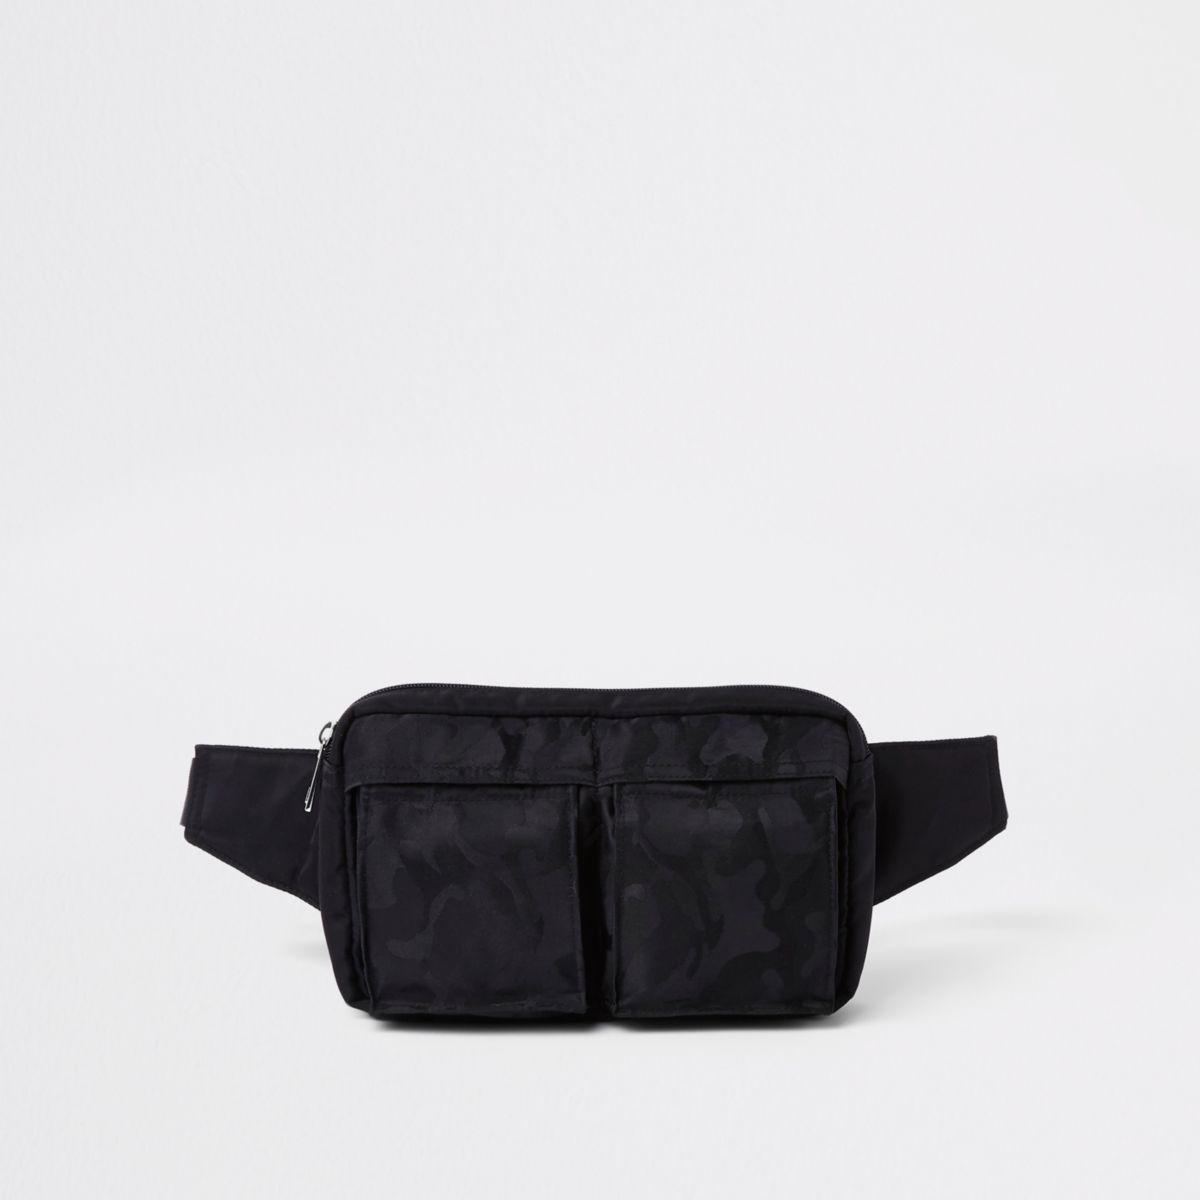 Black camo two pocket cross body bags